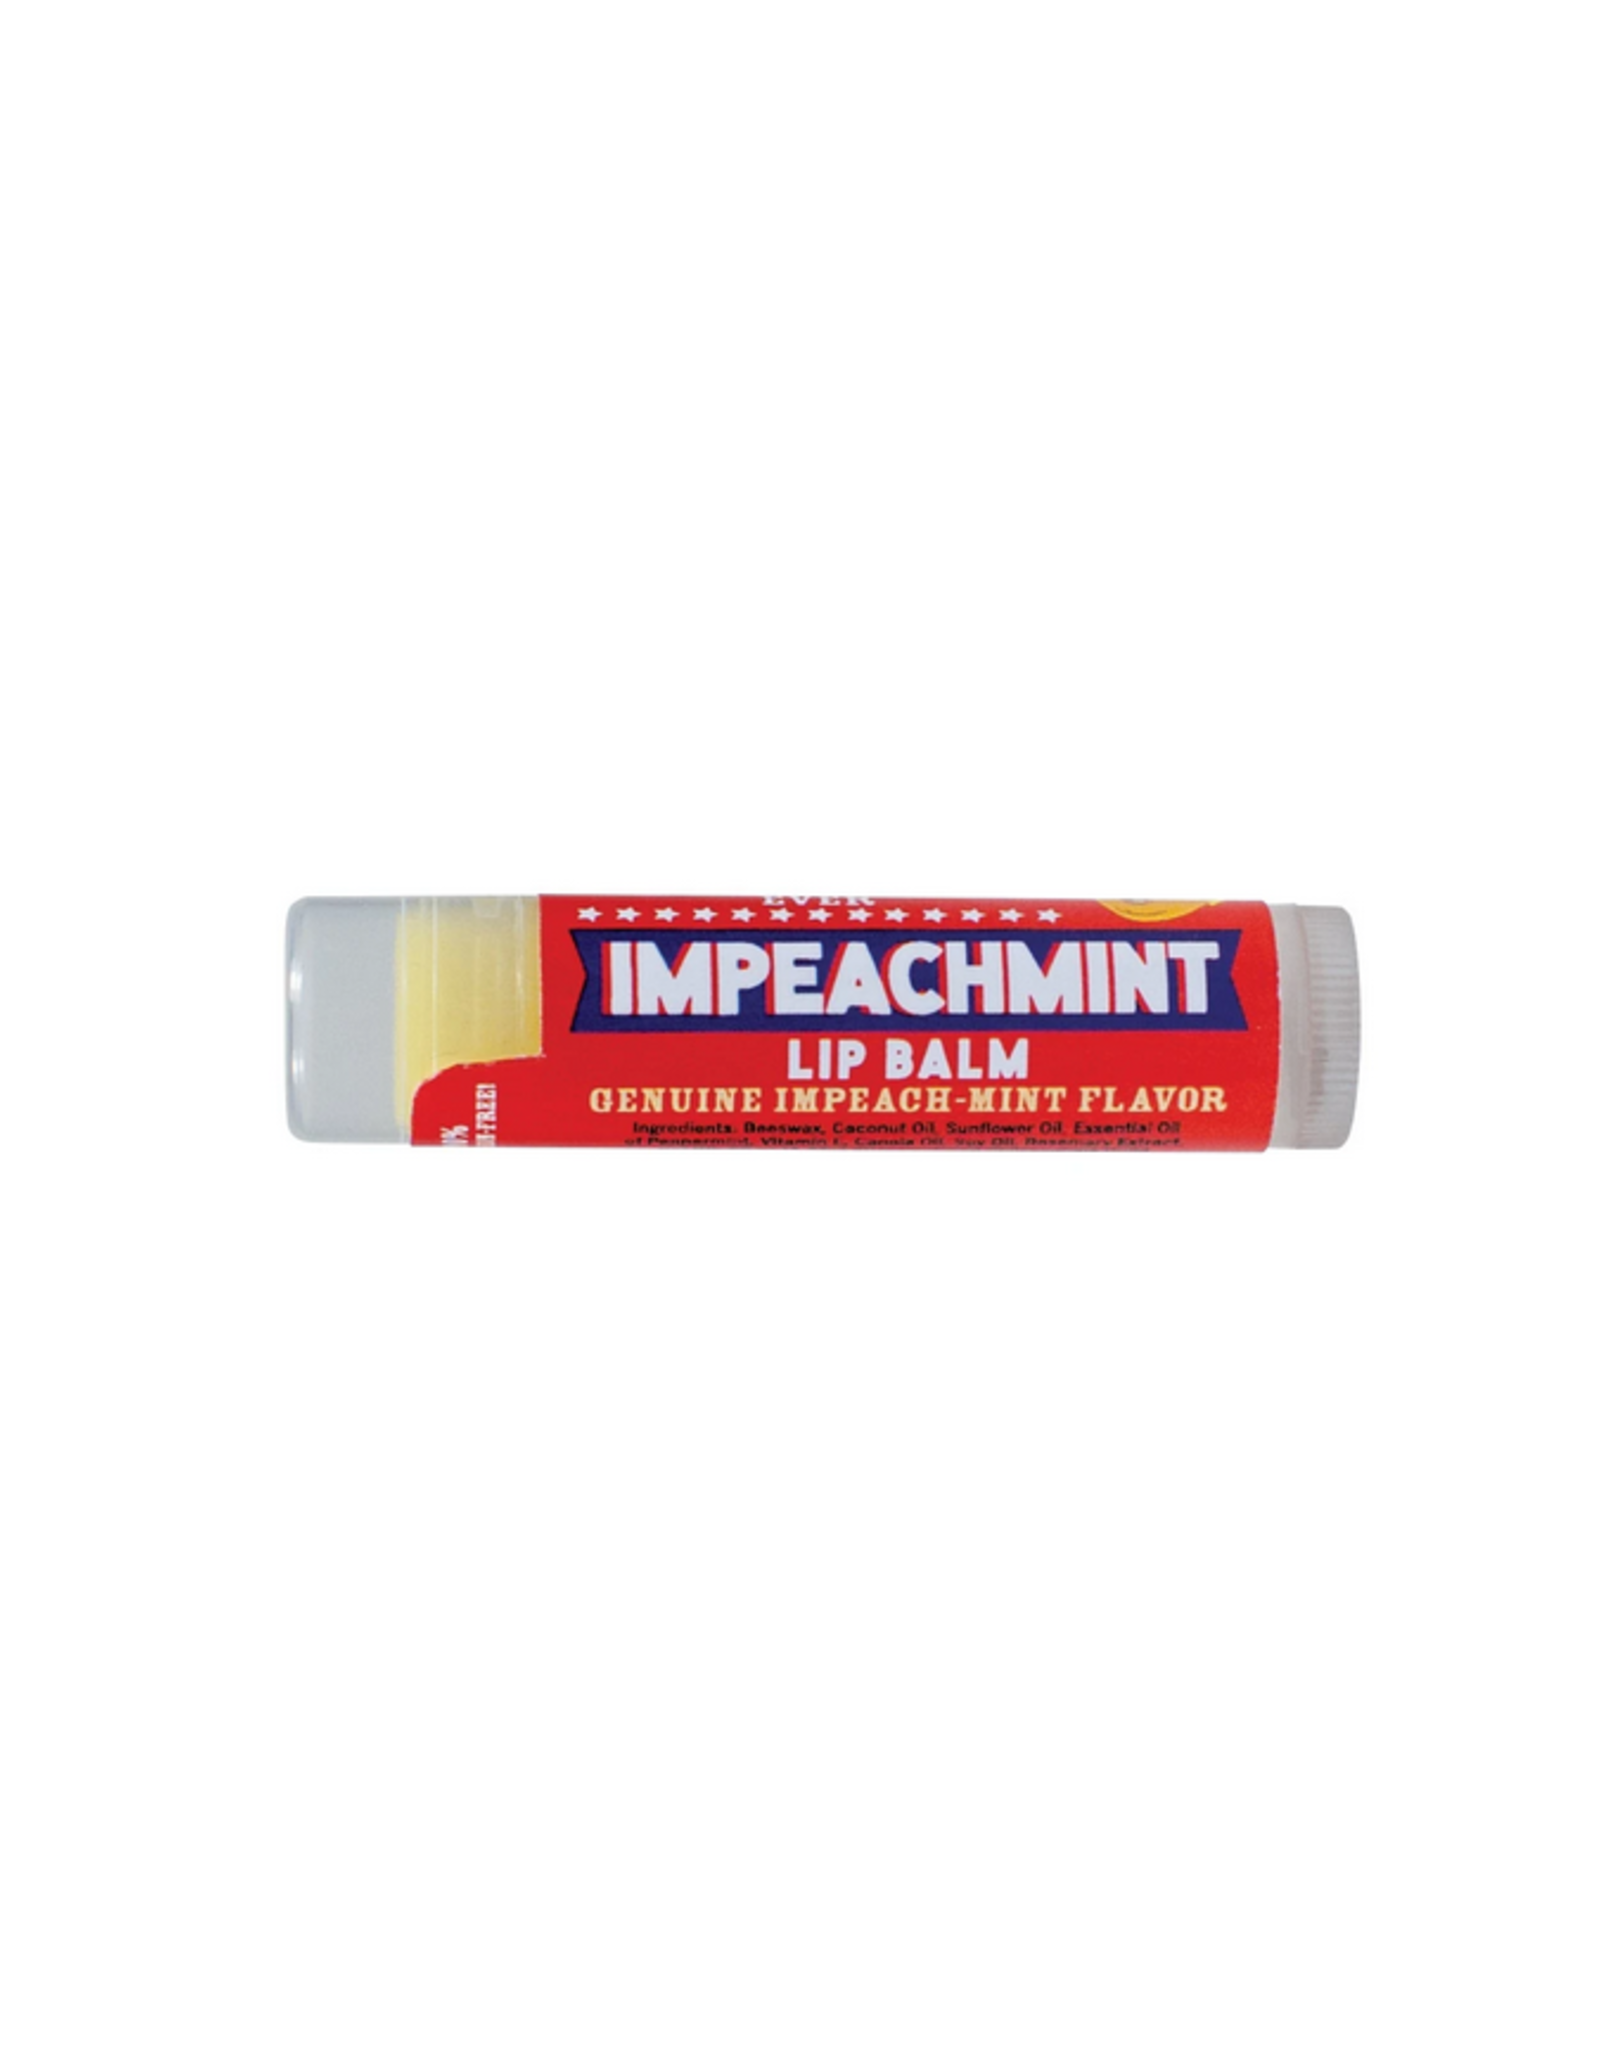 The Unemployed Philosopher's Guild Impeachment Lip Balm